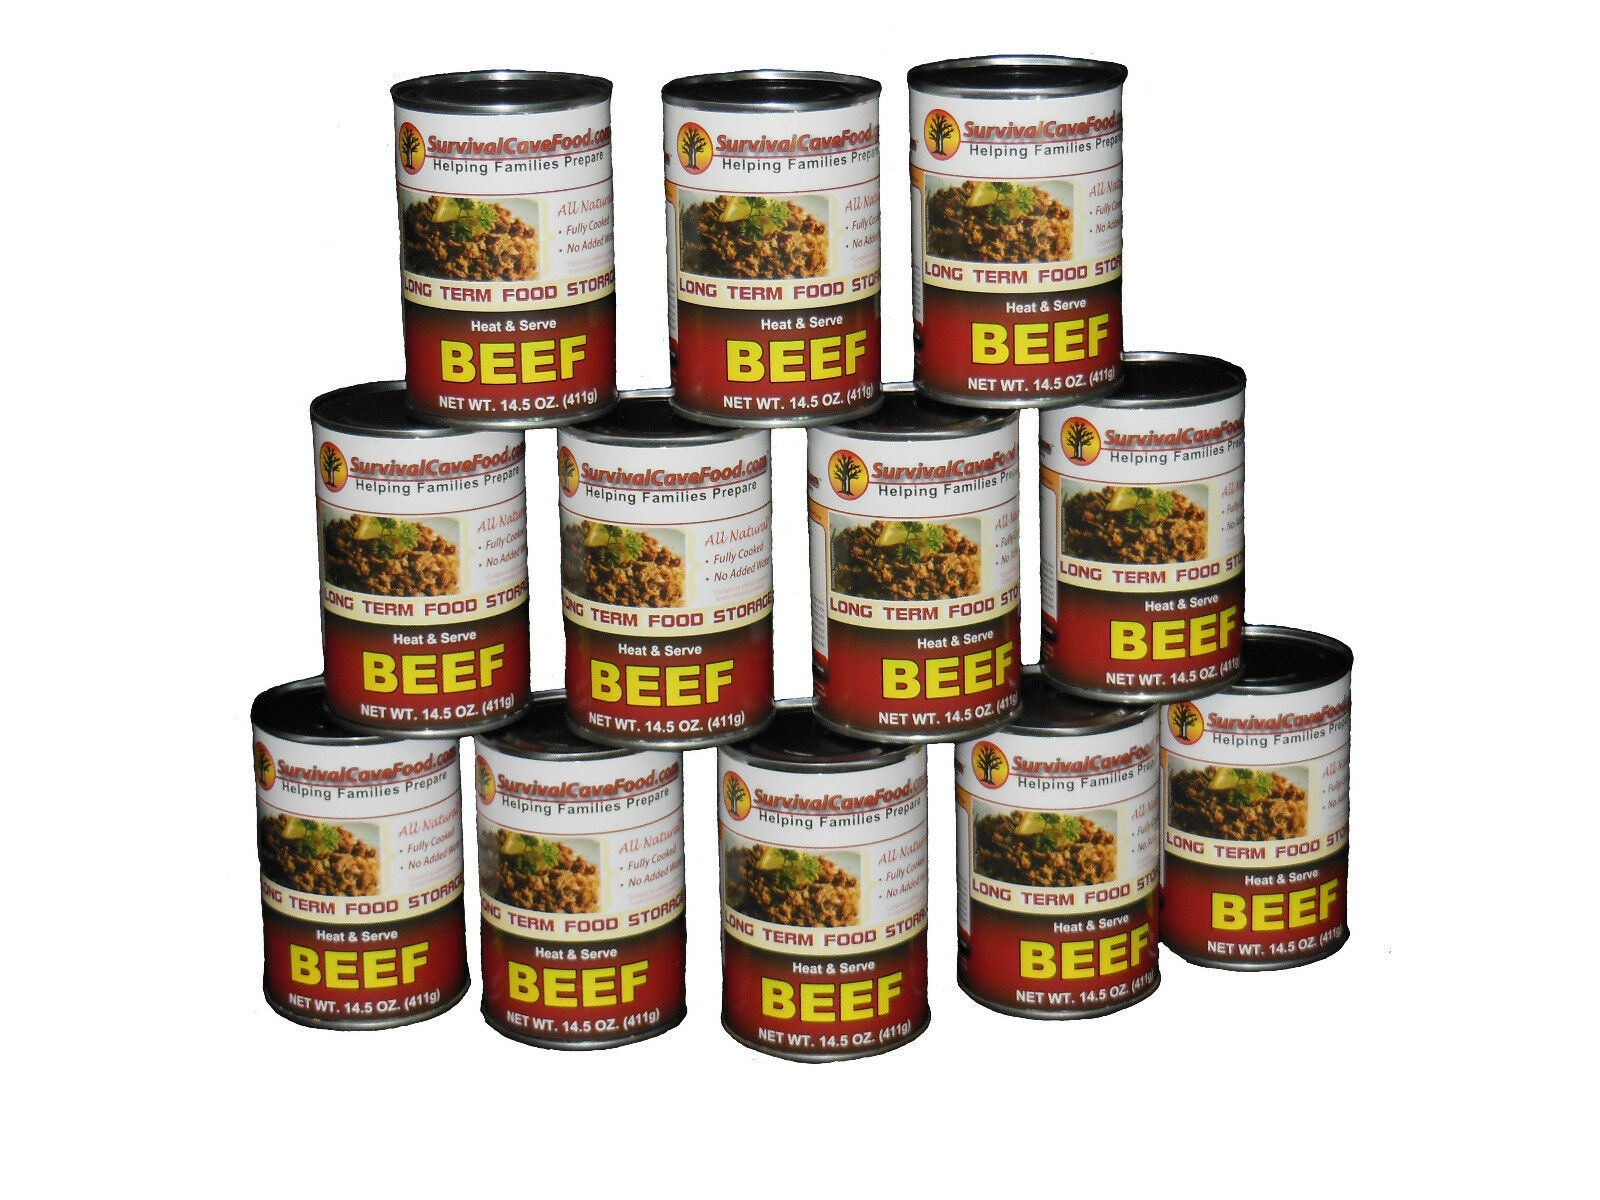 Survival Cave Food Canned Beef - Food Storage 12  Cans - 14.5 oz each  there are more brands of high-quality goods